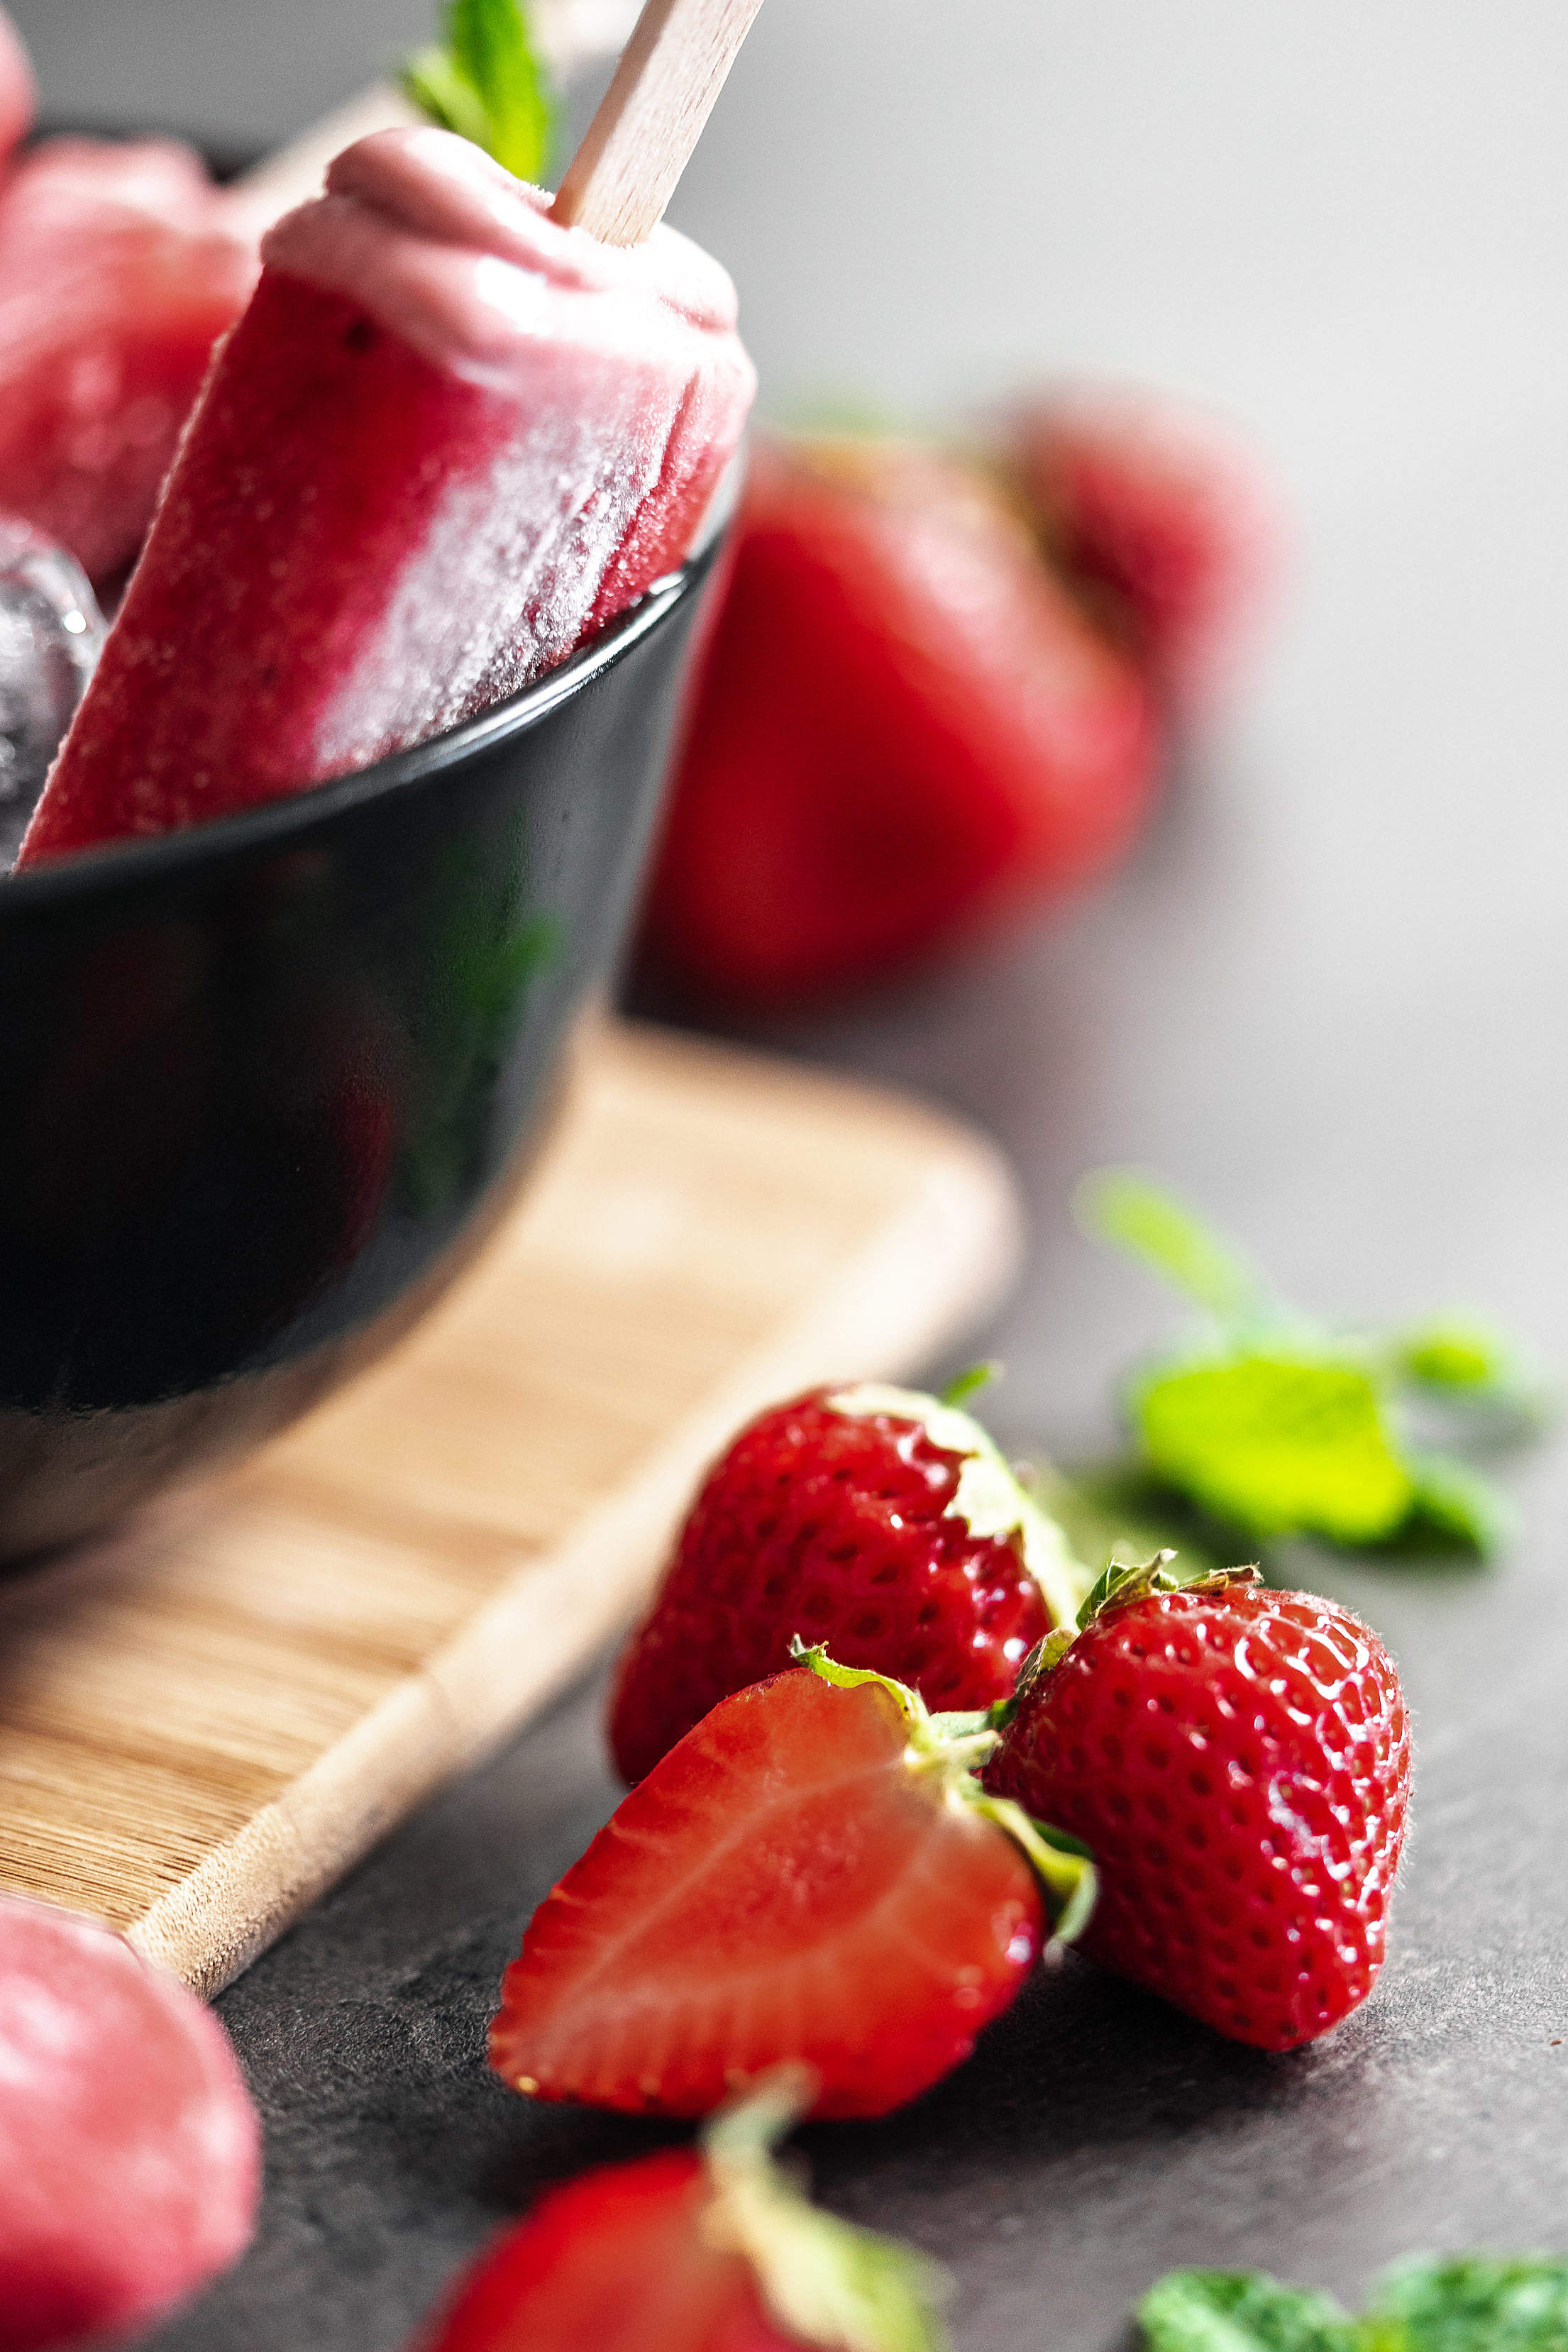 Strawberries and Homemade Ice Lolly Free Stock Photo